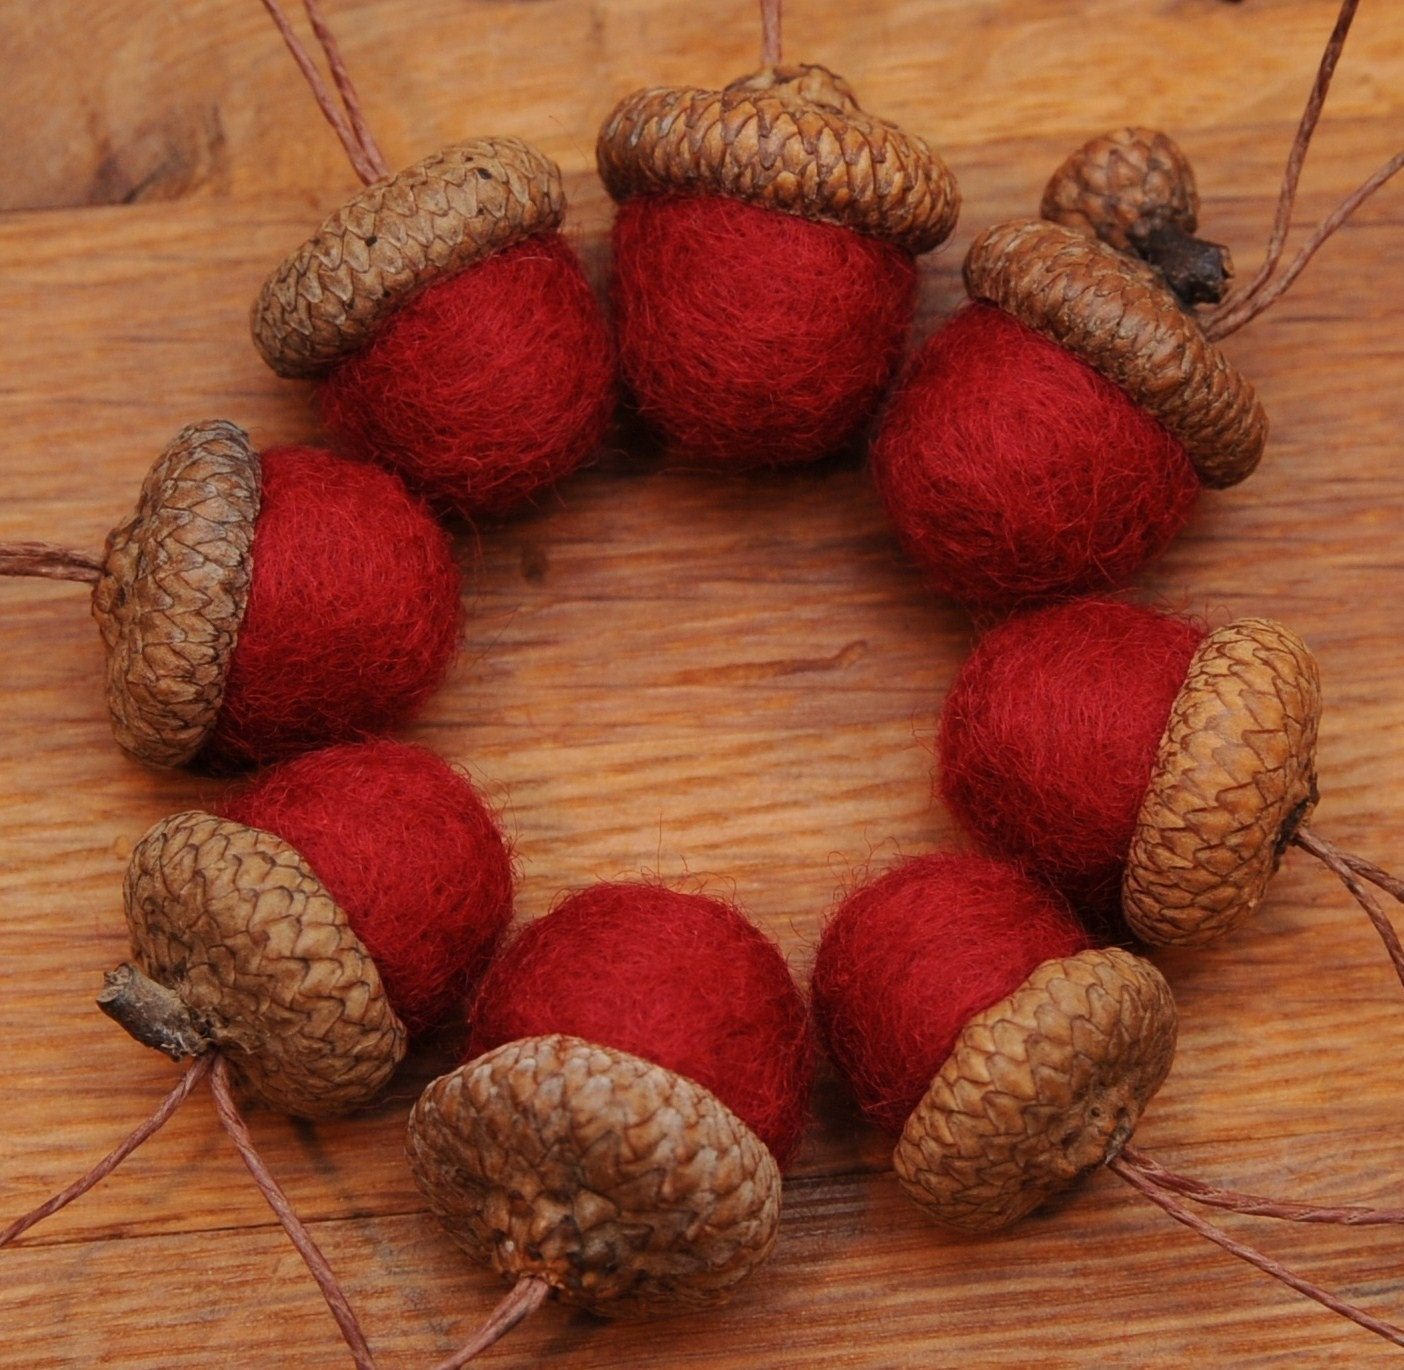 Red felted acorns or acorn christmas ornaments by for How to make acorn ornaments